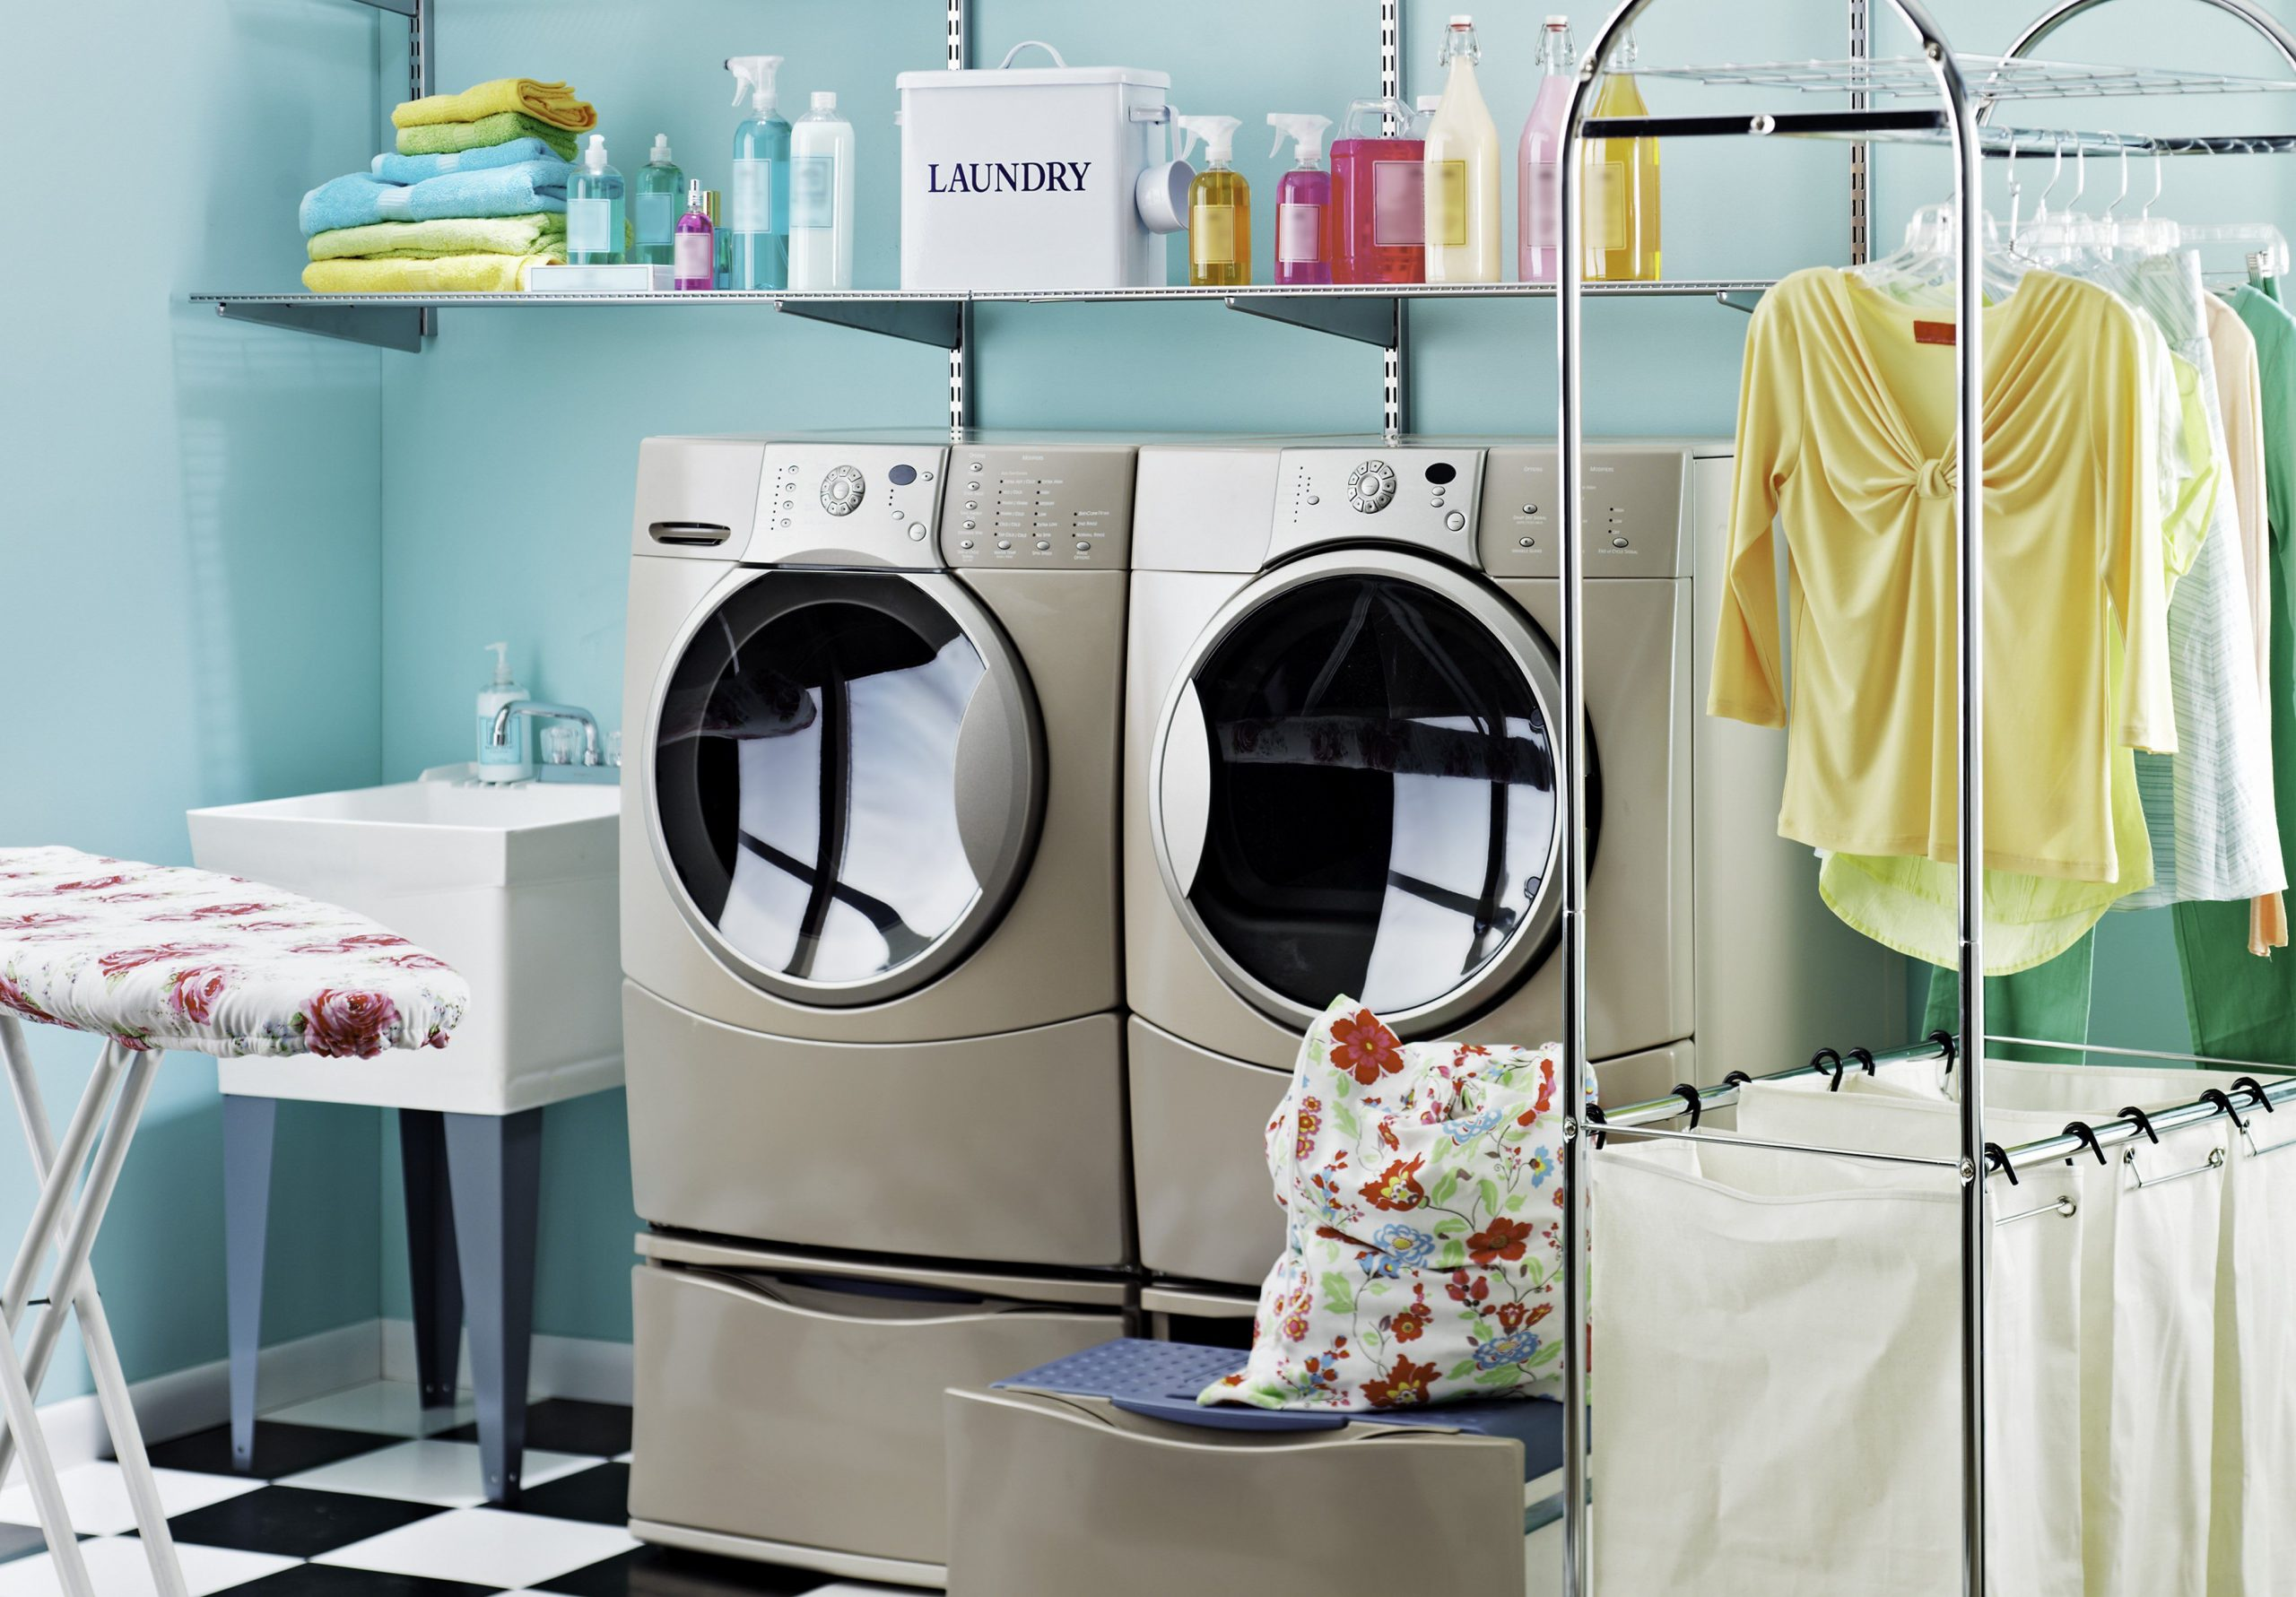 Laundry & Dry cleaning in Manchester 24hours delivery service | The Laundryman App